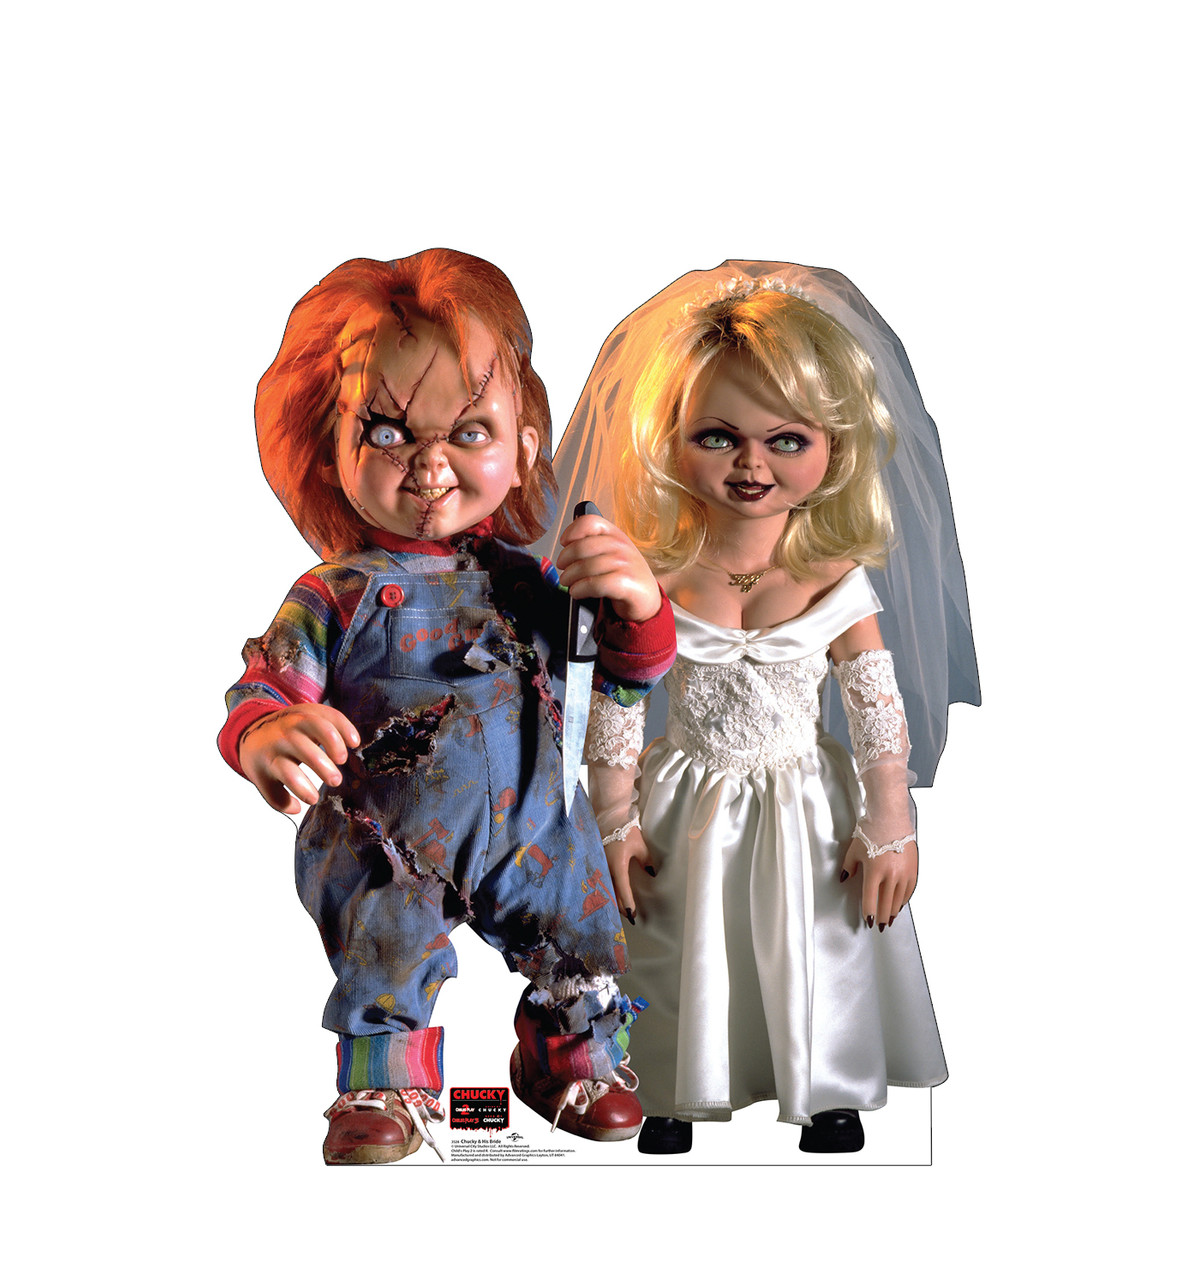 Life-size cardboard standee of Chucky and His Bride.